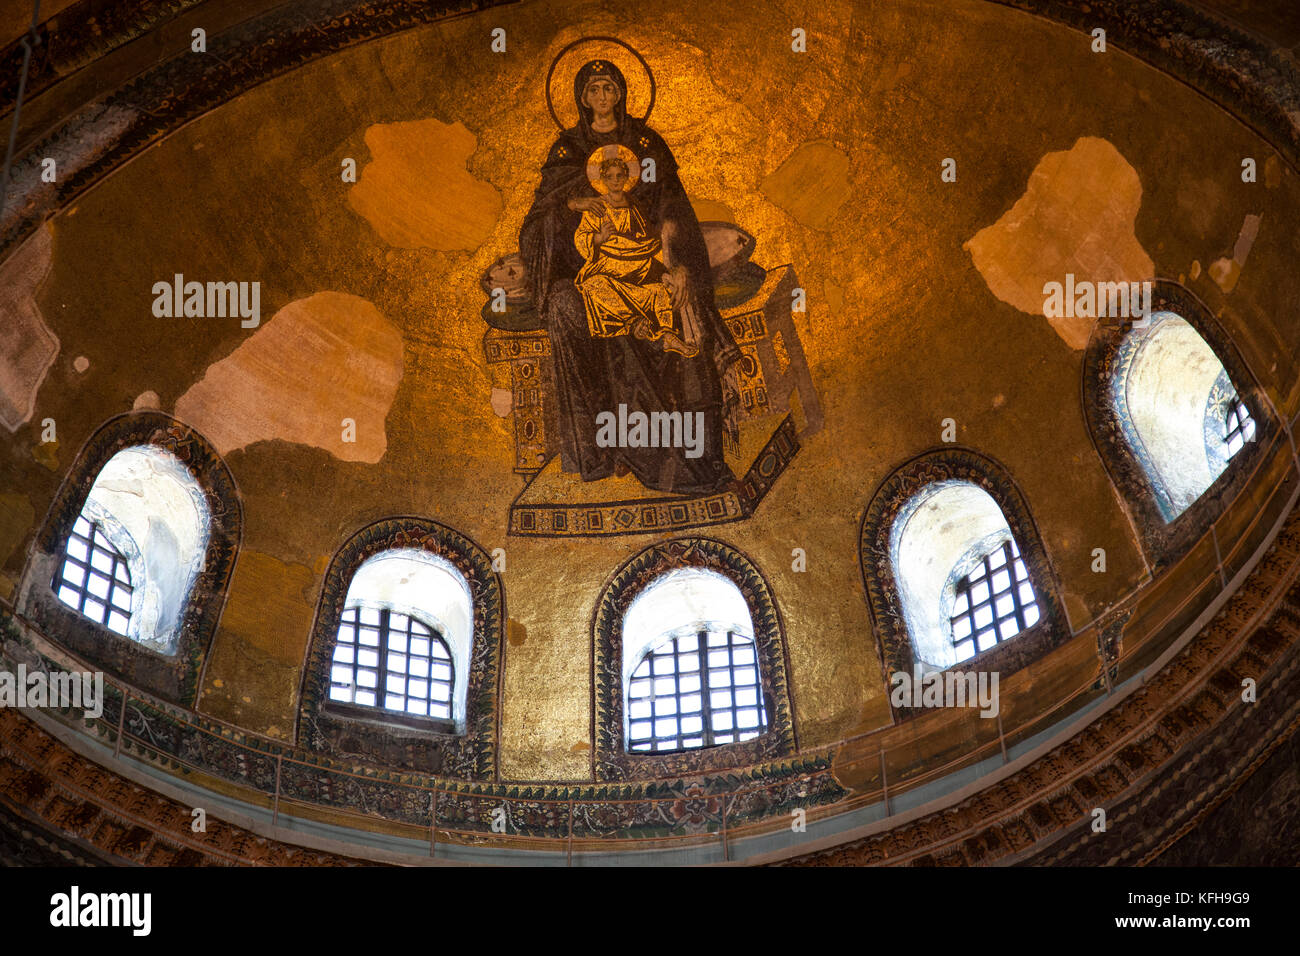 The Apse Mosaic in the Hagia Sophia shows the Virgin Mary holding baby Jesus, Istanbul, Turkey. - Stock Image